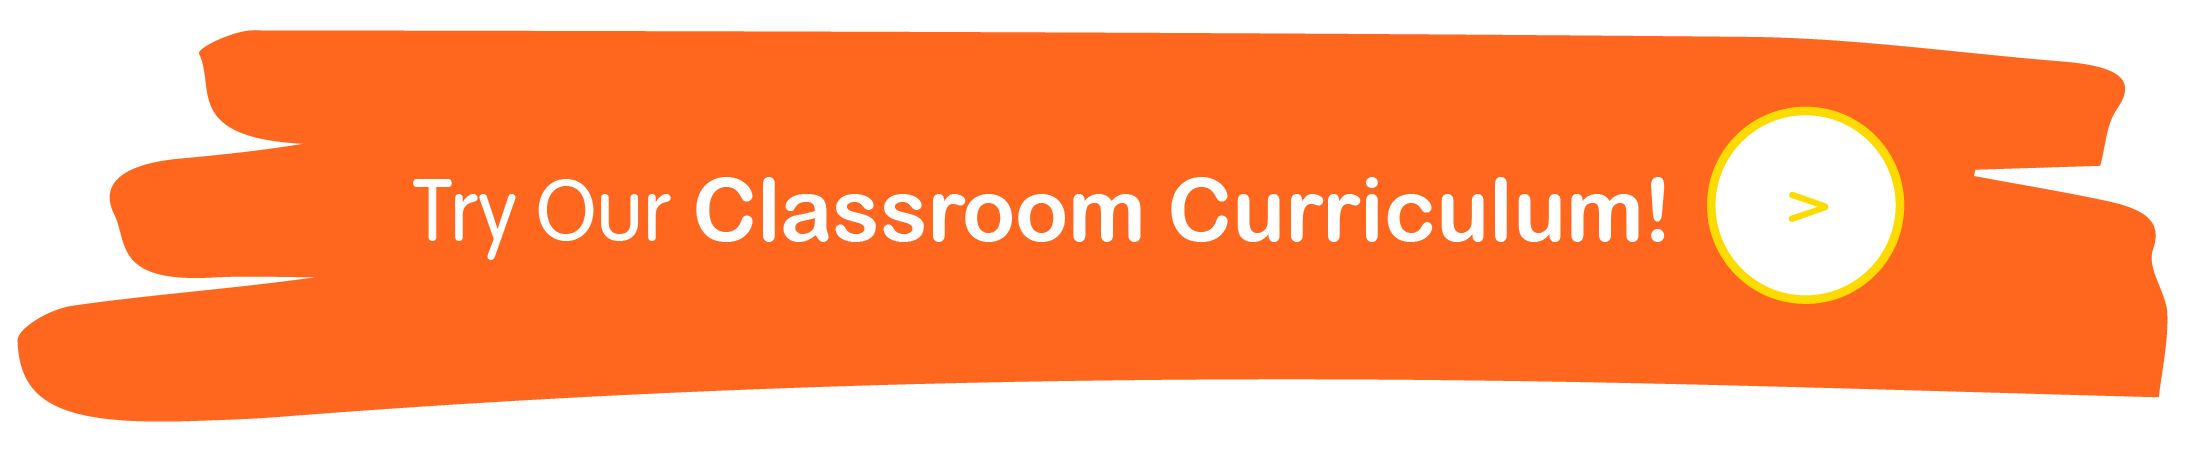 try our classroom curriculum!